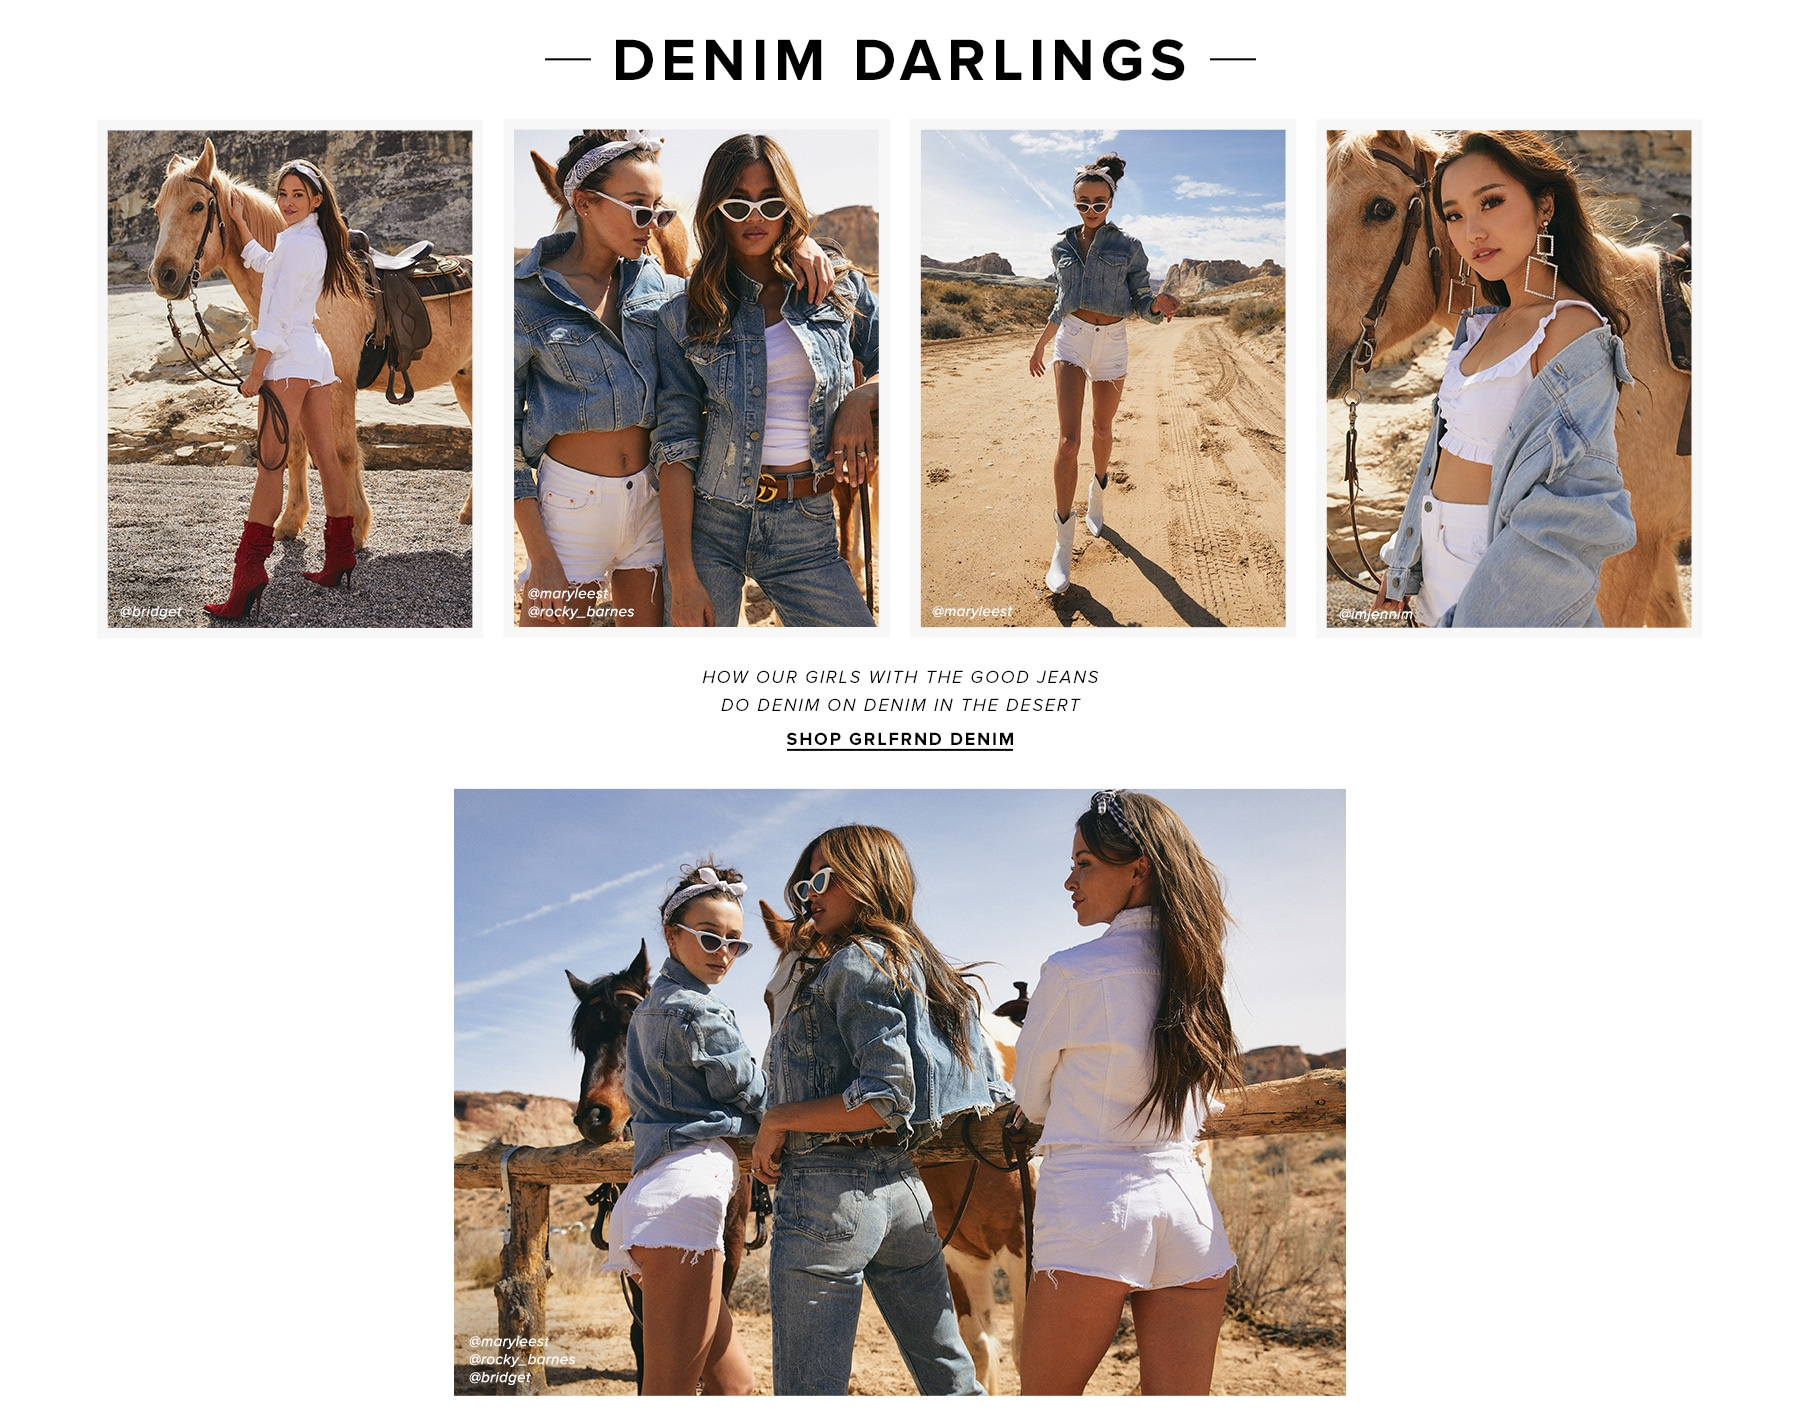 Denim darlings. How our babes in the wild wild west are wearing the wild wild best from our fave brands. Shop the edit.